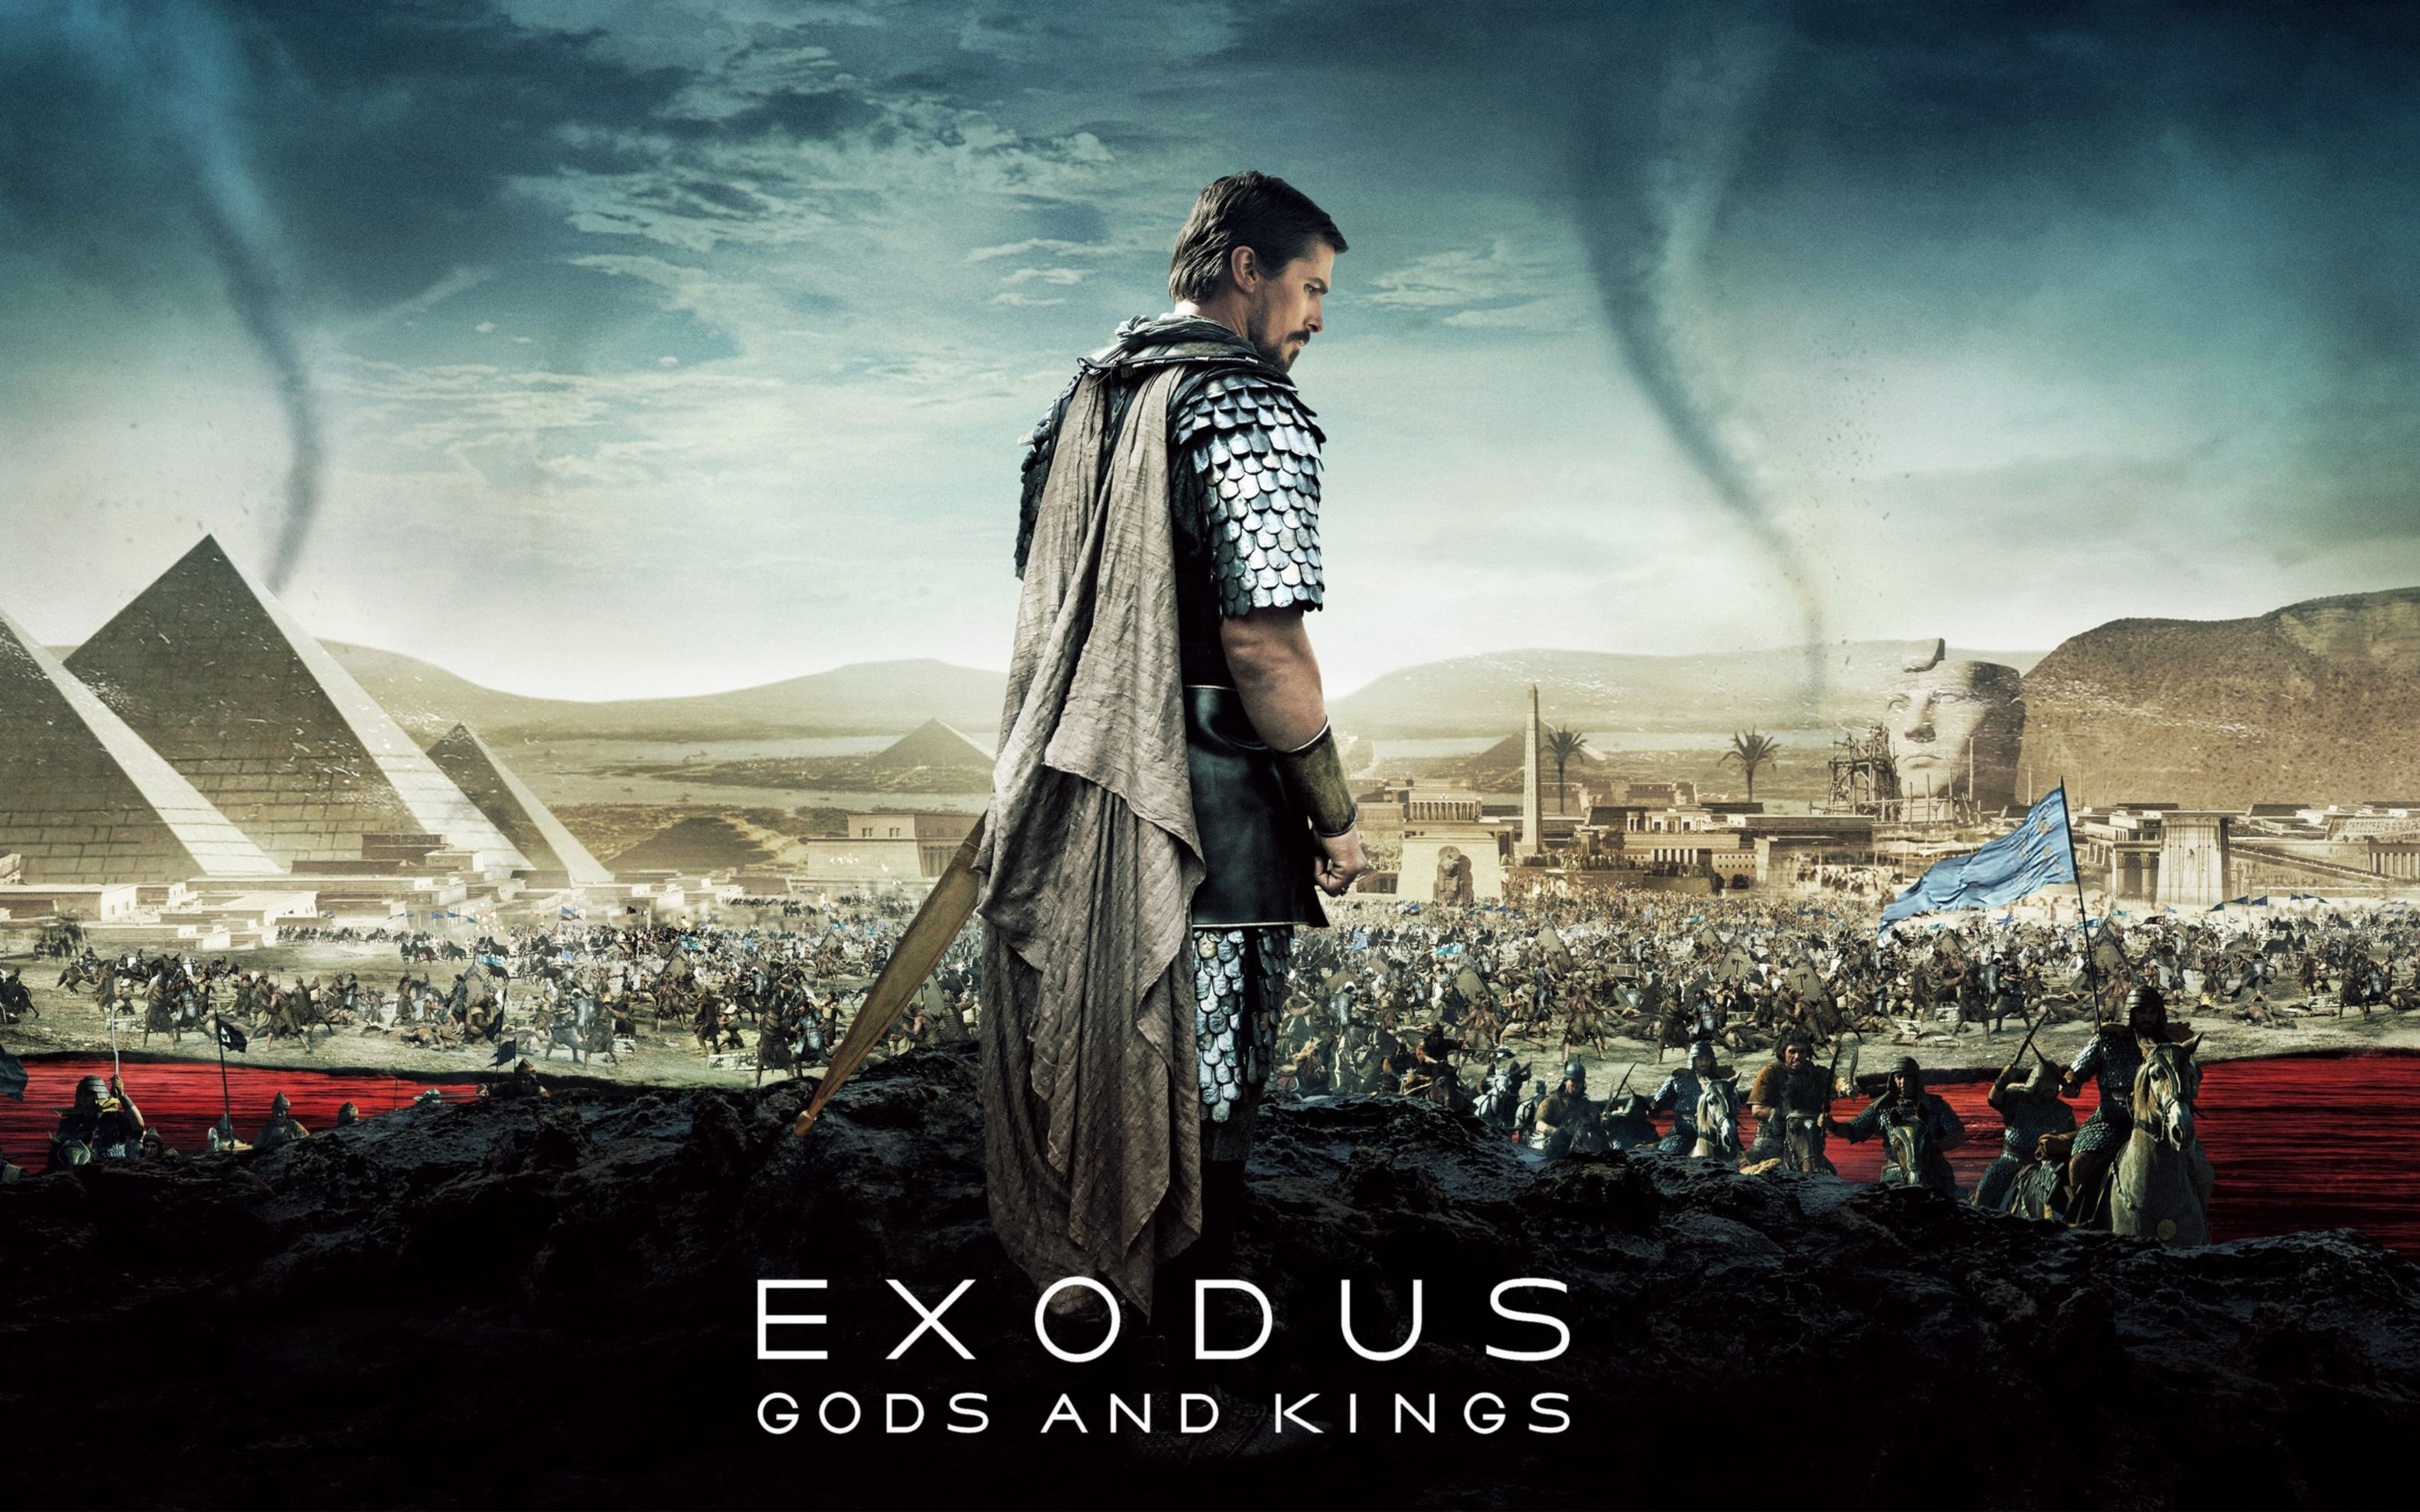 Download free HD Exodus Gods And Kings Movie Wide Wallpaper, image